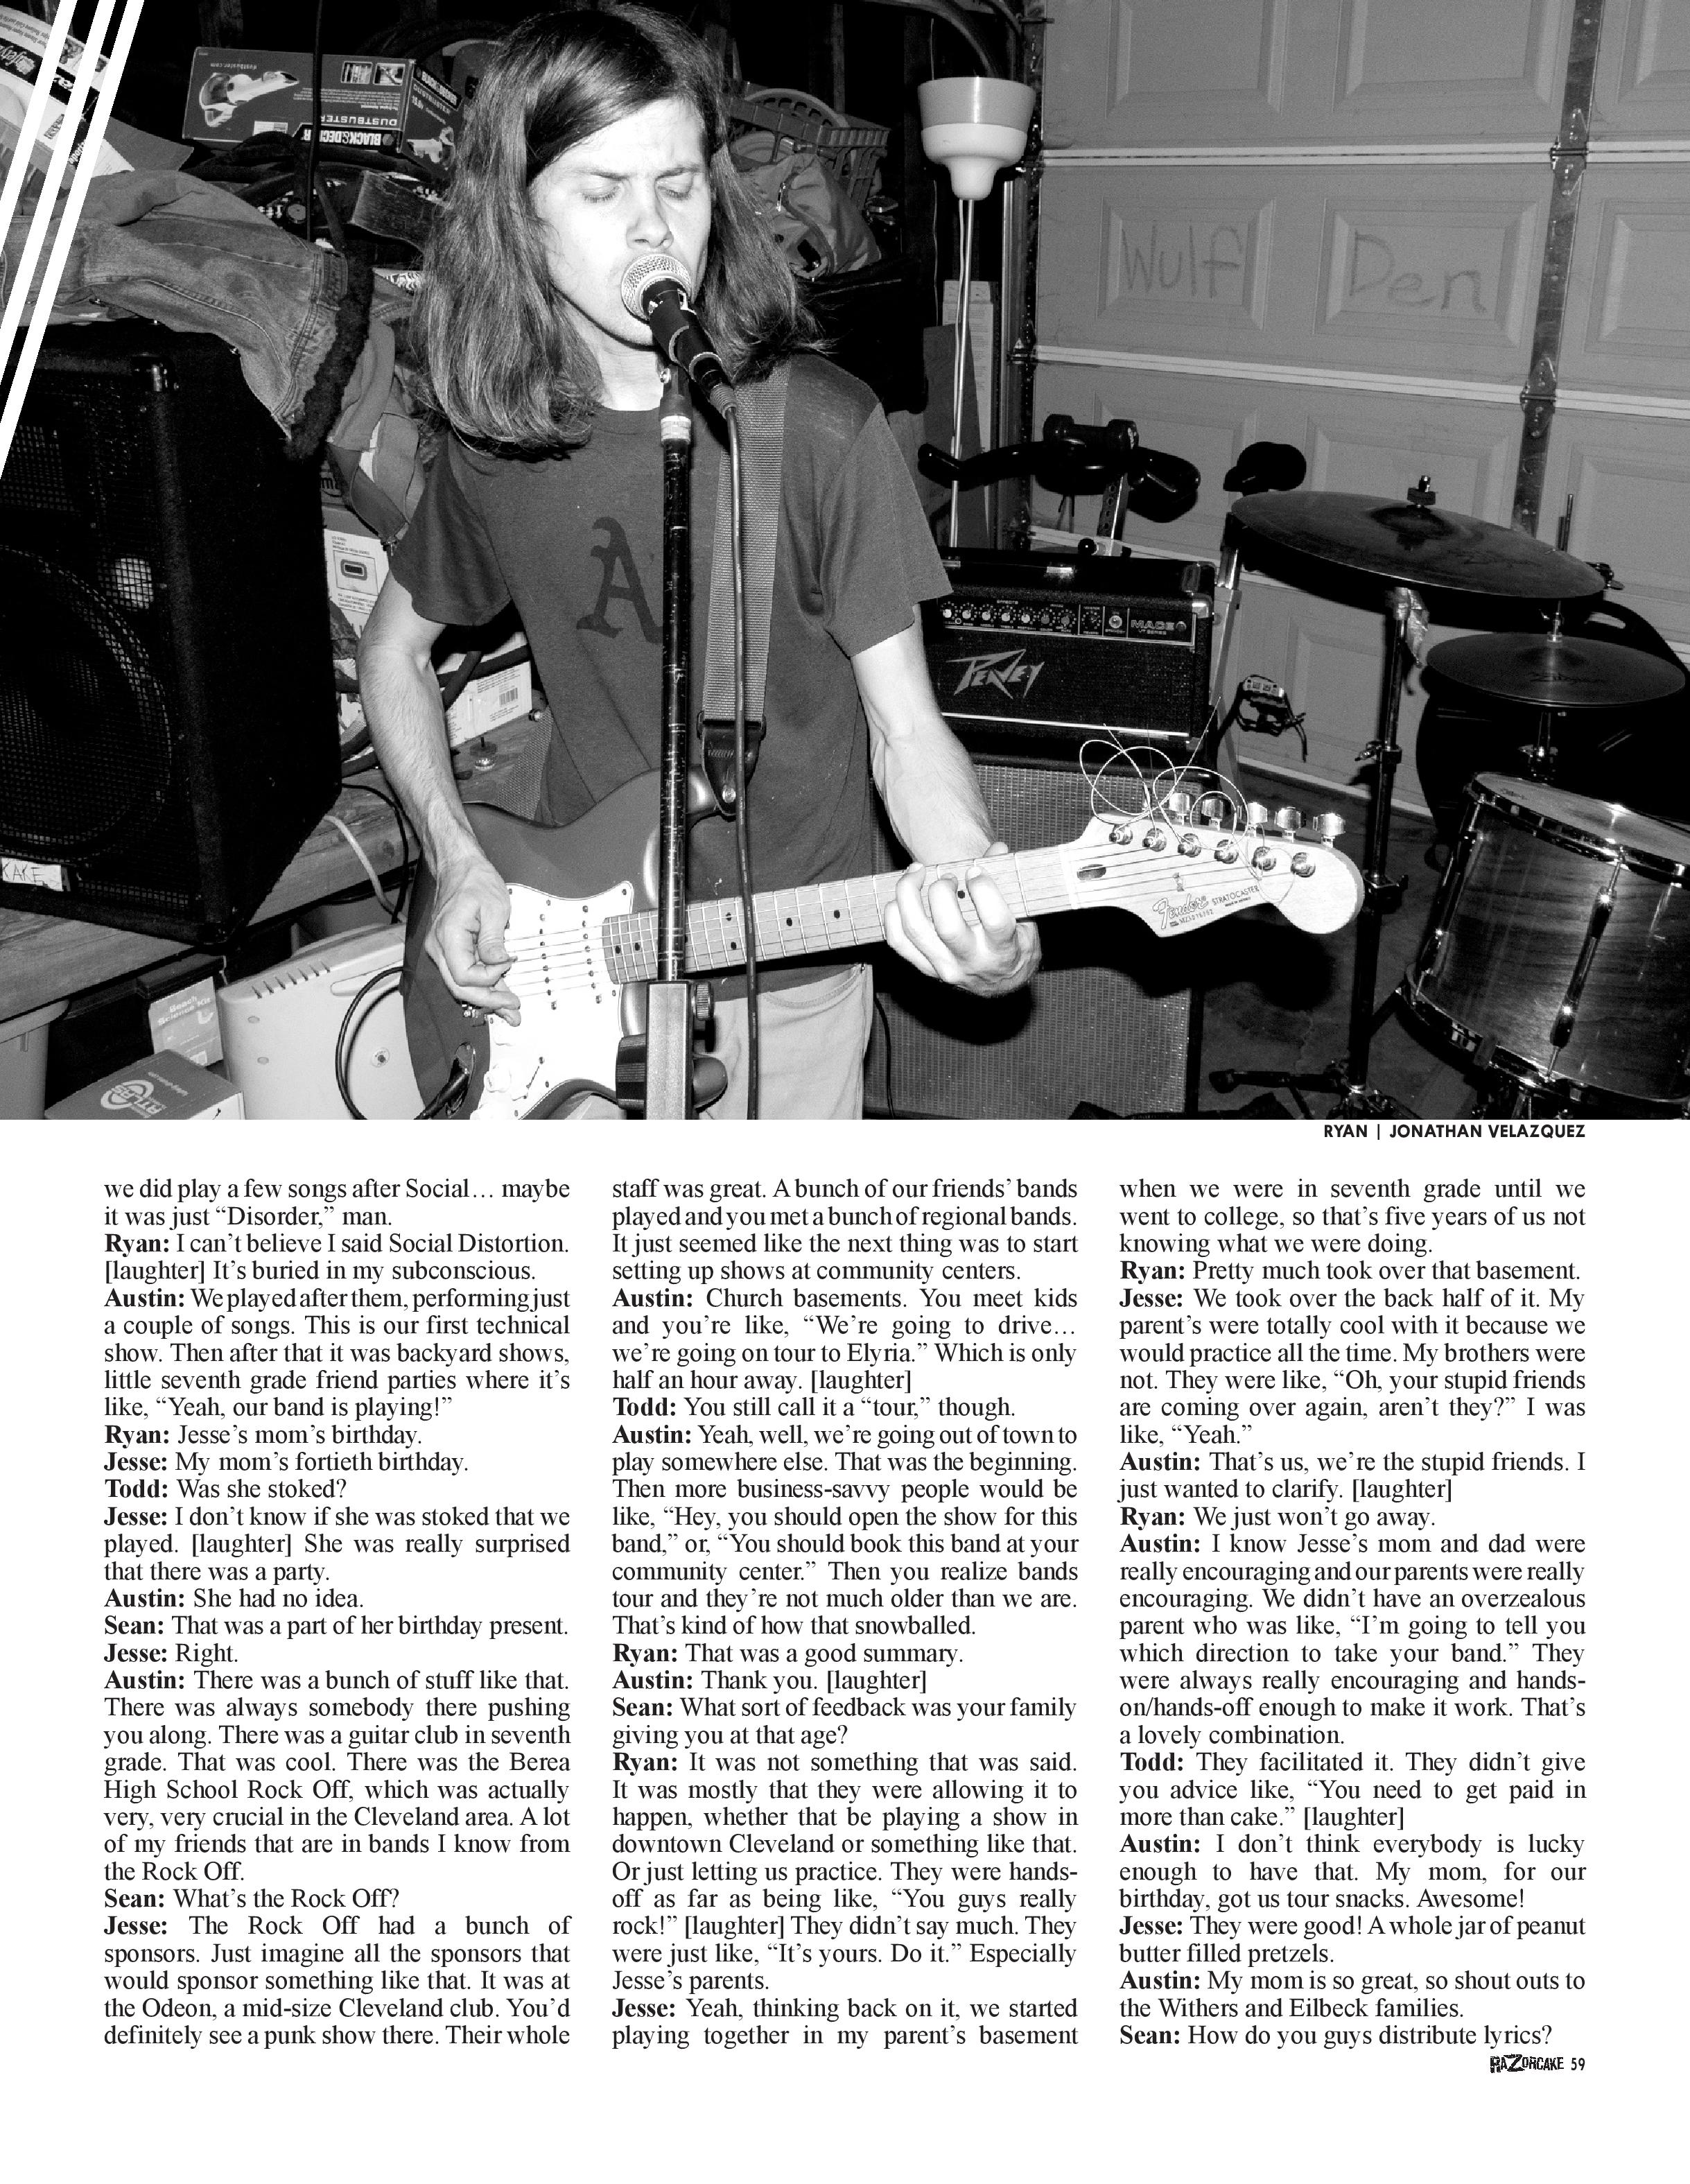 delay_interview-page-004.jpg